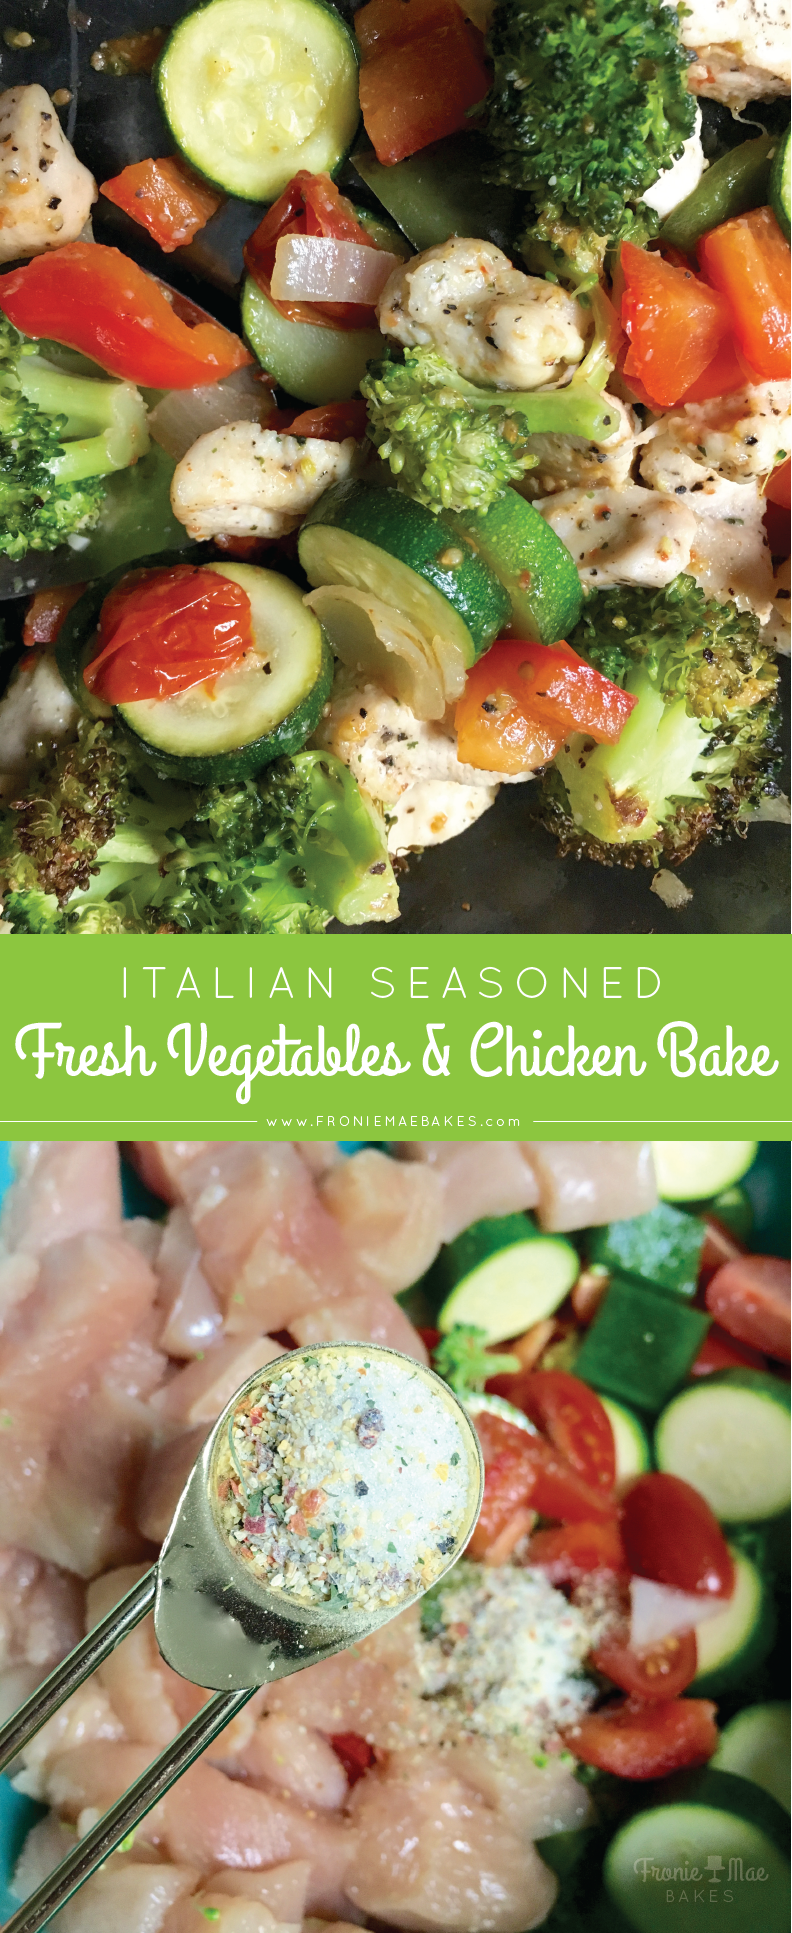 Italian Seasoned Vegetables and Chicken Bake recipe by www.froniemaebakes.com